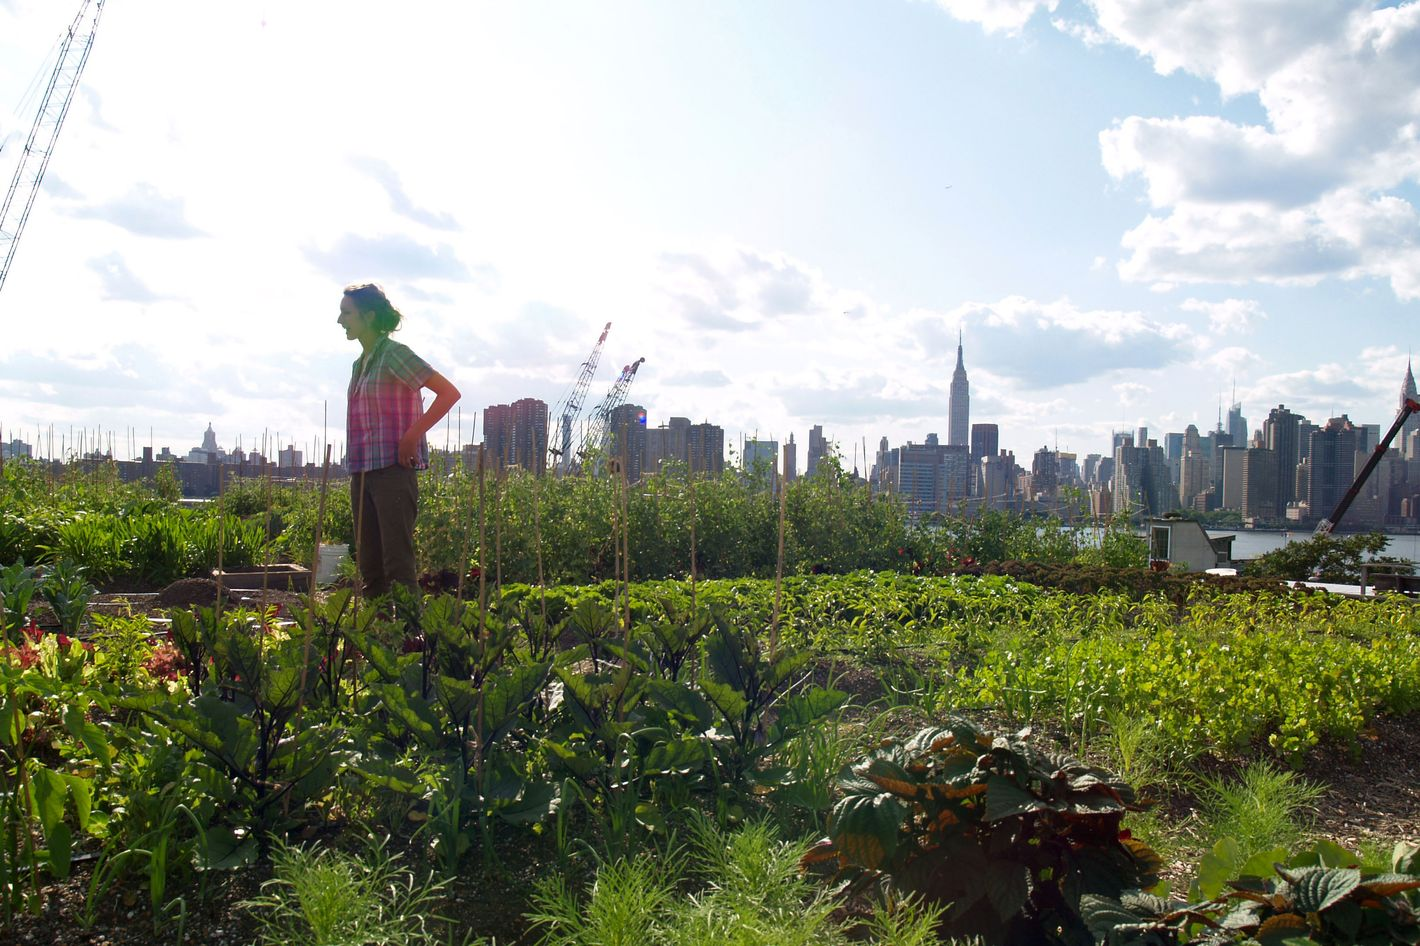 Urban farmer Annie Novak surveys the farm in Brooklyn, New York, U.S., on July 14, 2009.  Rooftop Farms has 6000 square feet of space to raise produce.Photographer: Mike Di Paola/Bloomberg